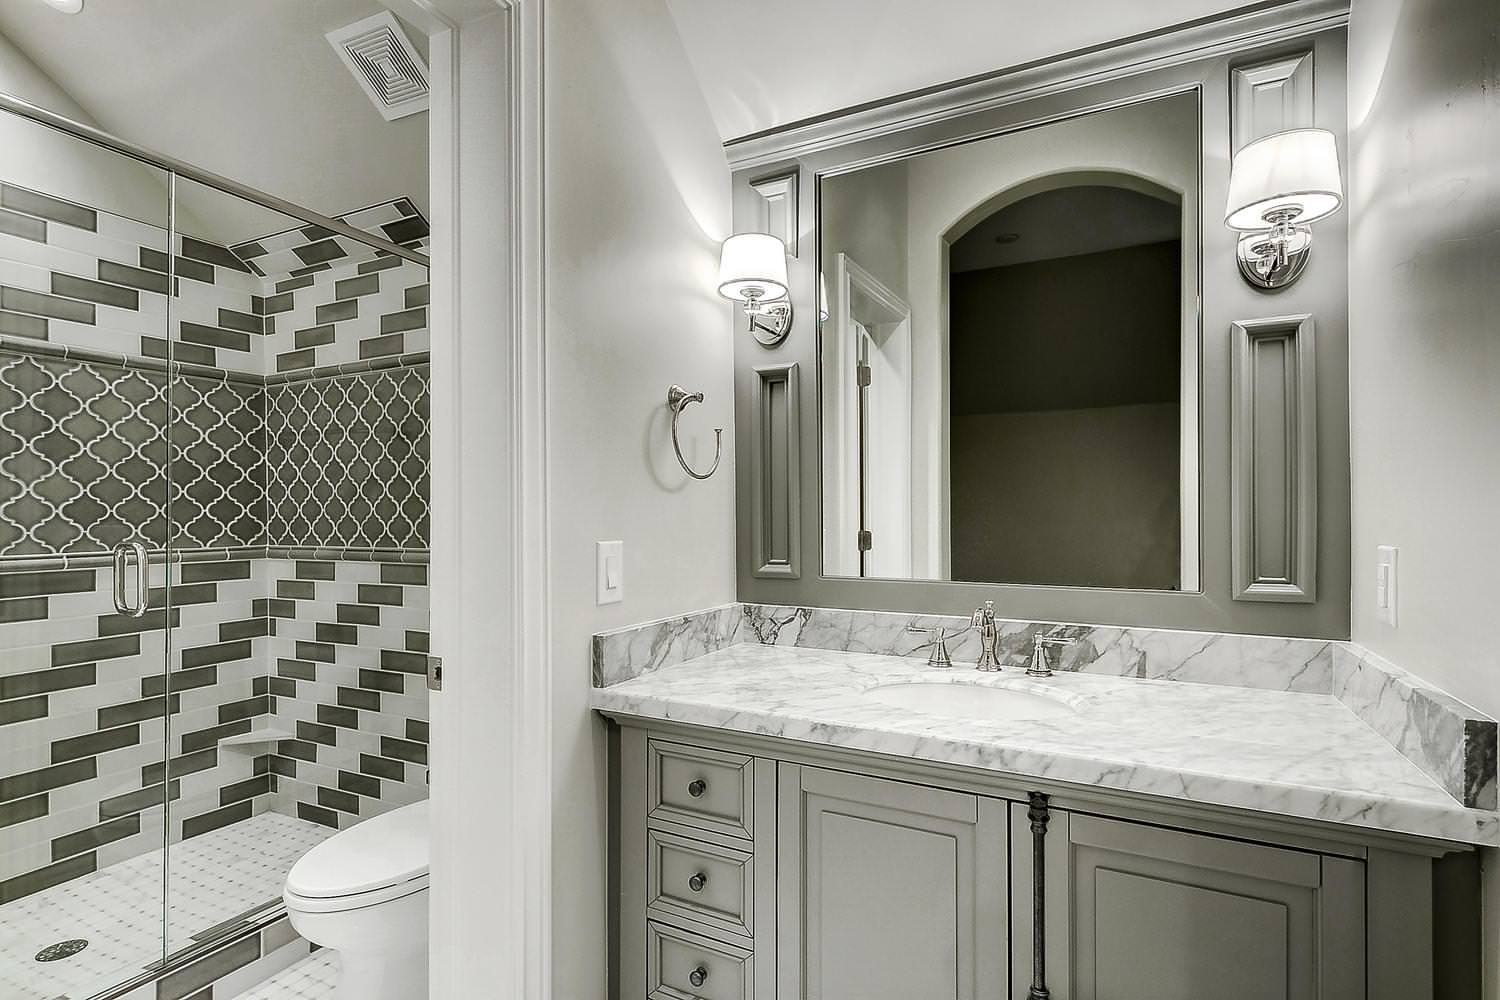 75 Beautiful French Country Bathroom Pictures Ideas March 2021 Houzz